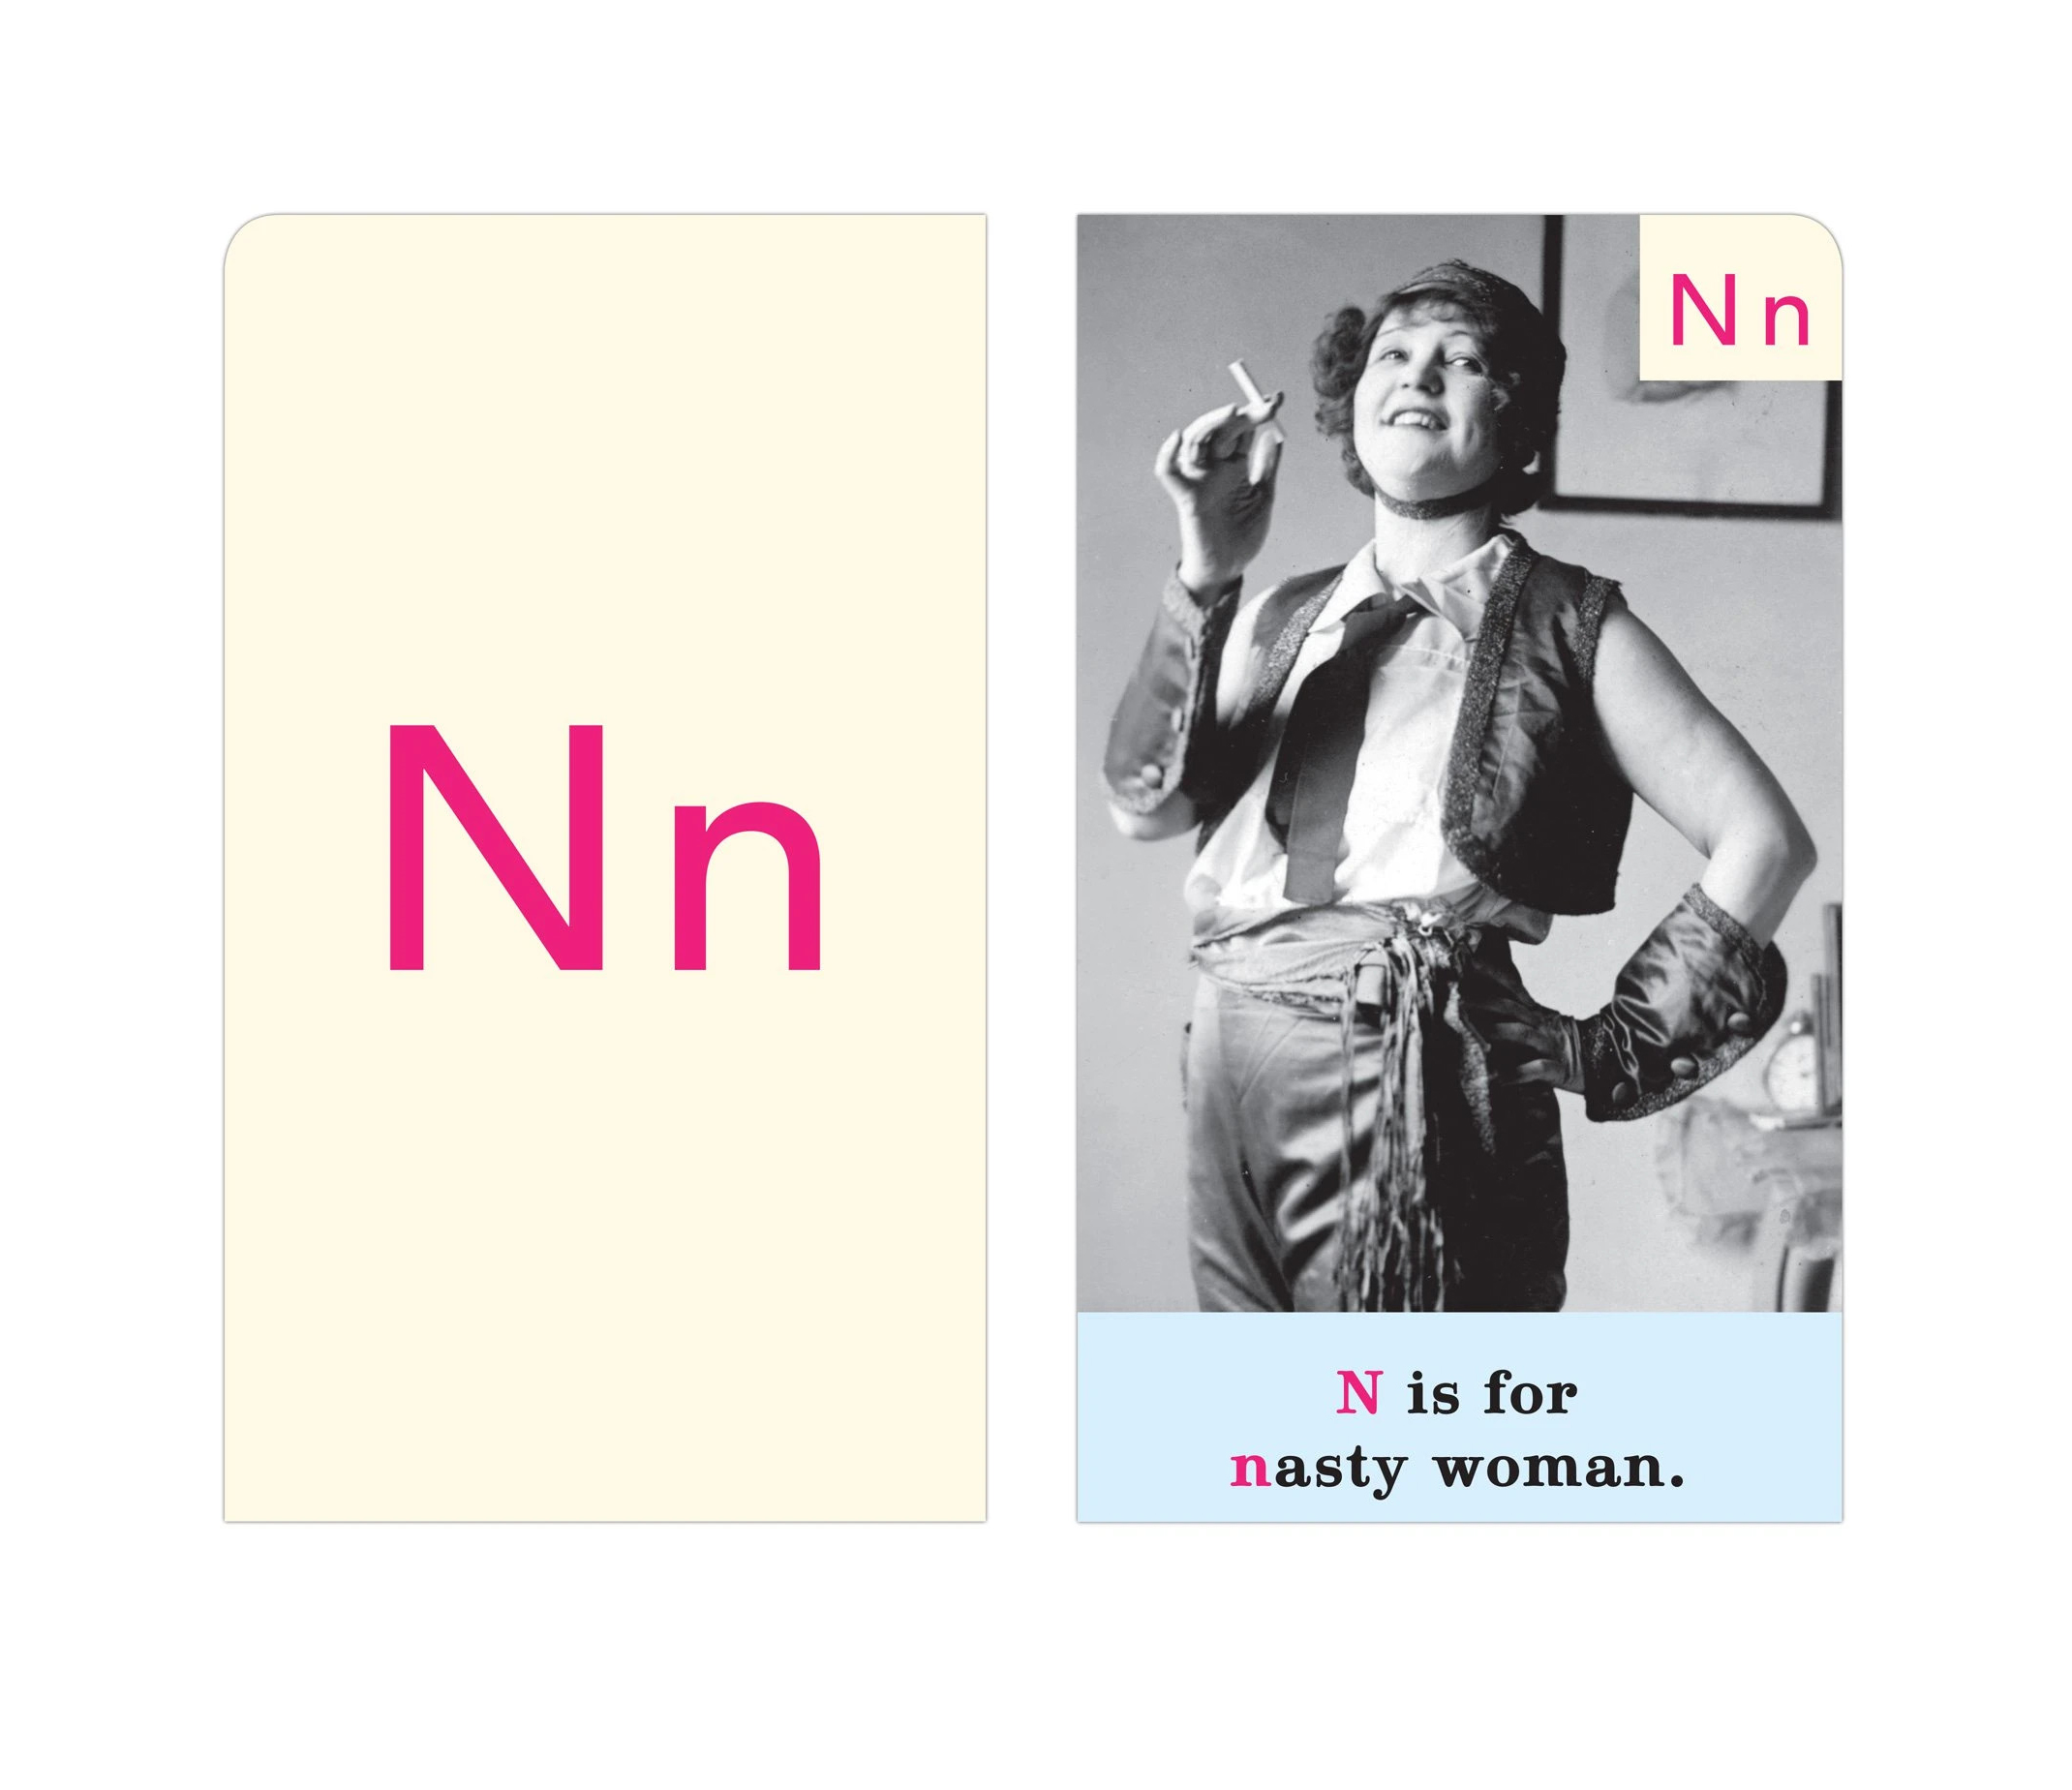 The letter card N stands for Nasty Woman. The front of the card is a cream color paper with the letter N on it in hot pink. The back of the card features an image of a woman holding a cigarette standing proudly.